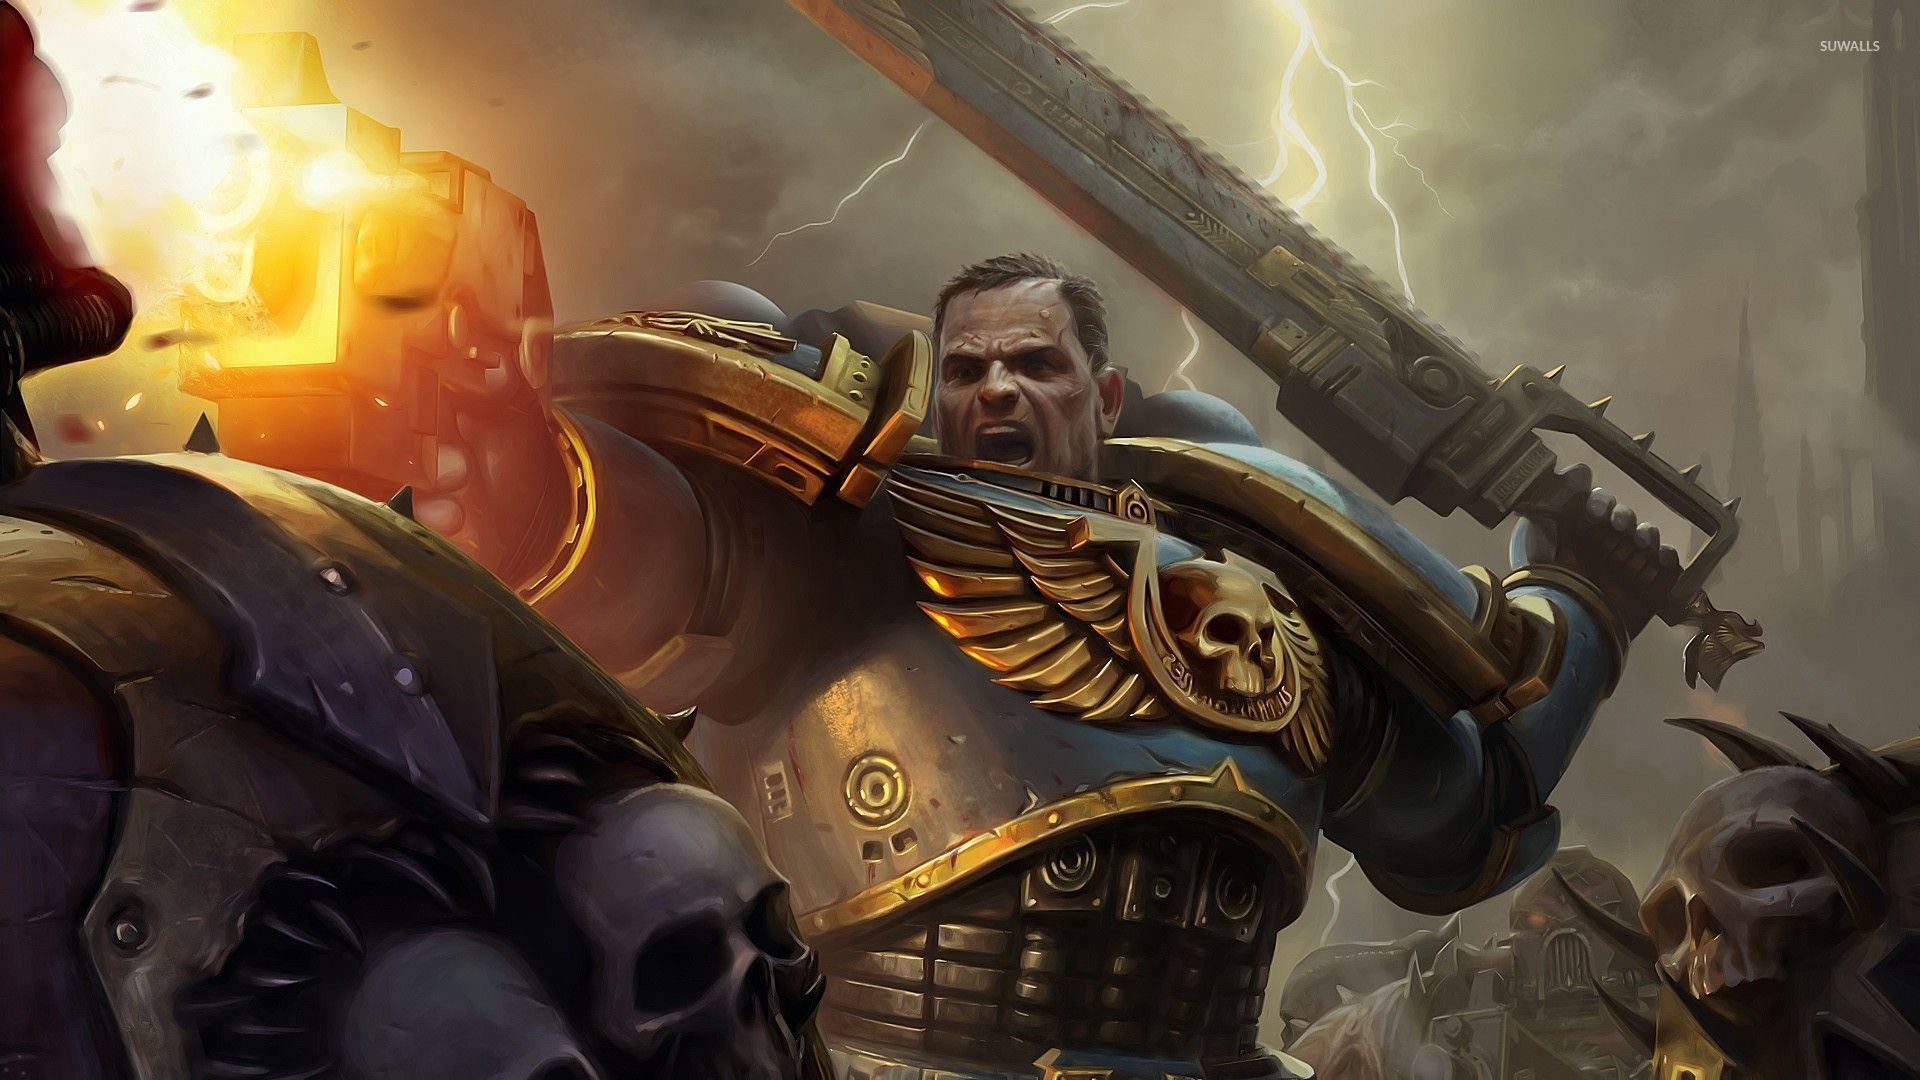 warhammer 40,000 - space marines [5] wallpaper - game wallpapers